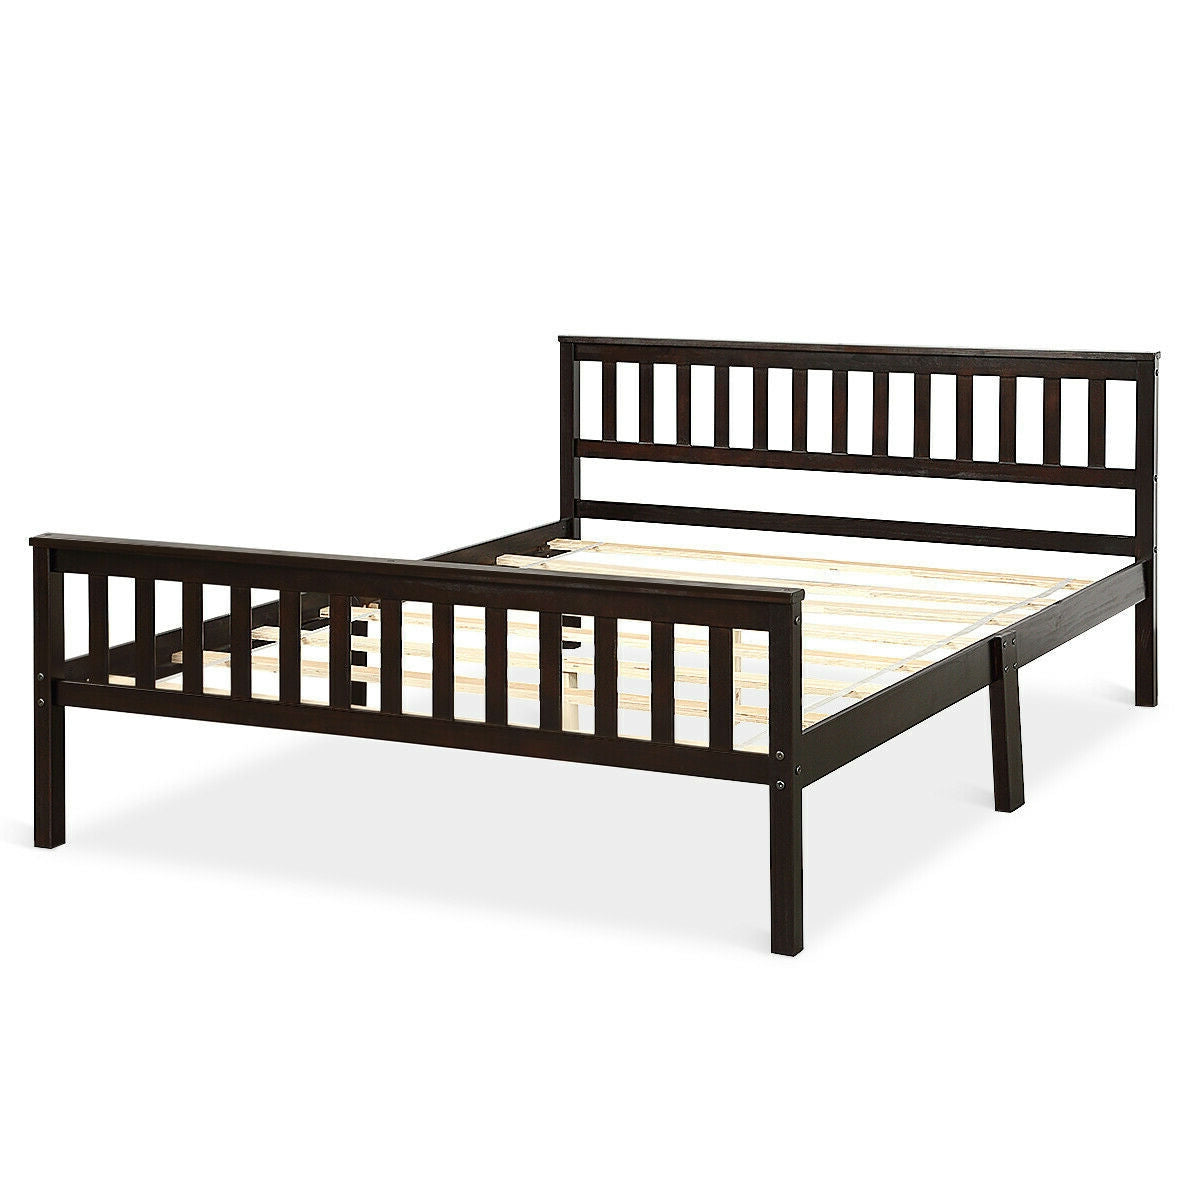 Queen Wood Platform Bed Frame with Headboard and Footboard in Espresso